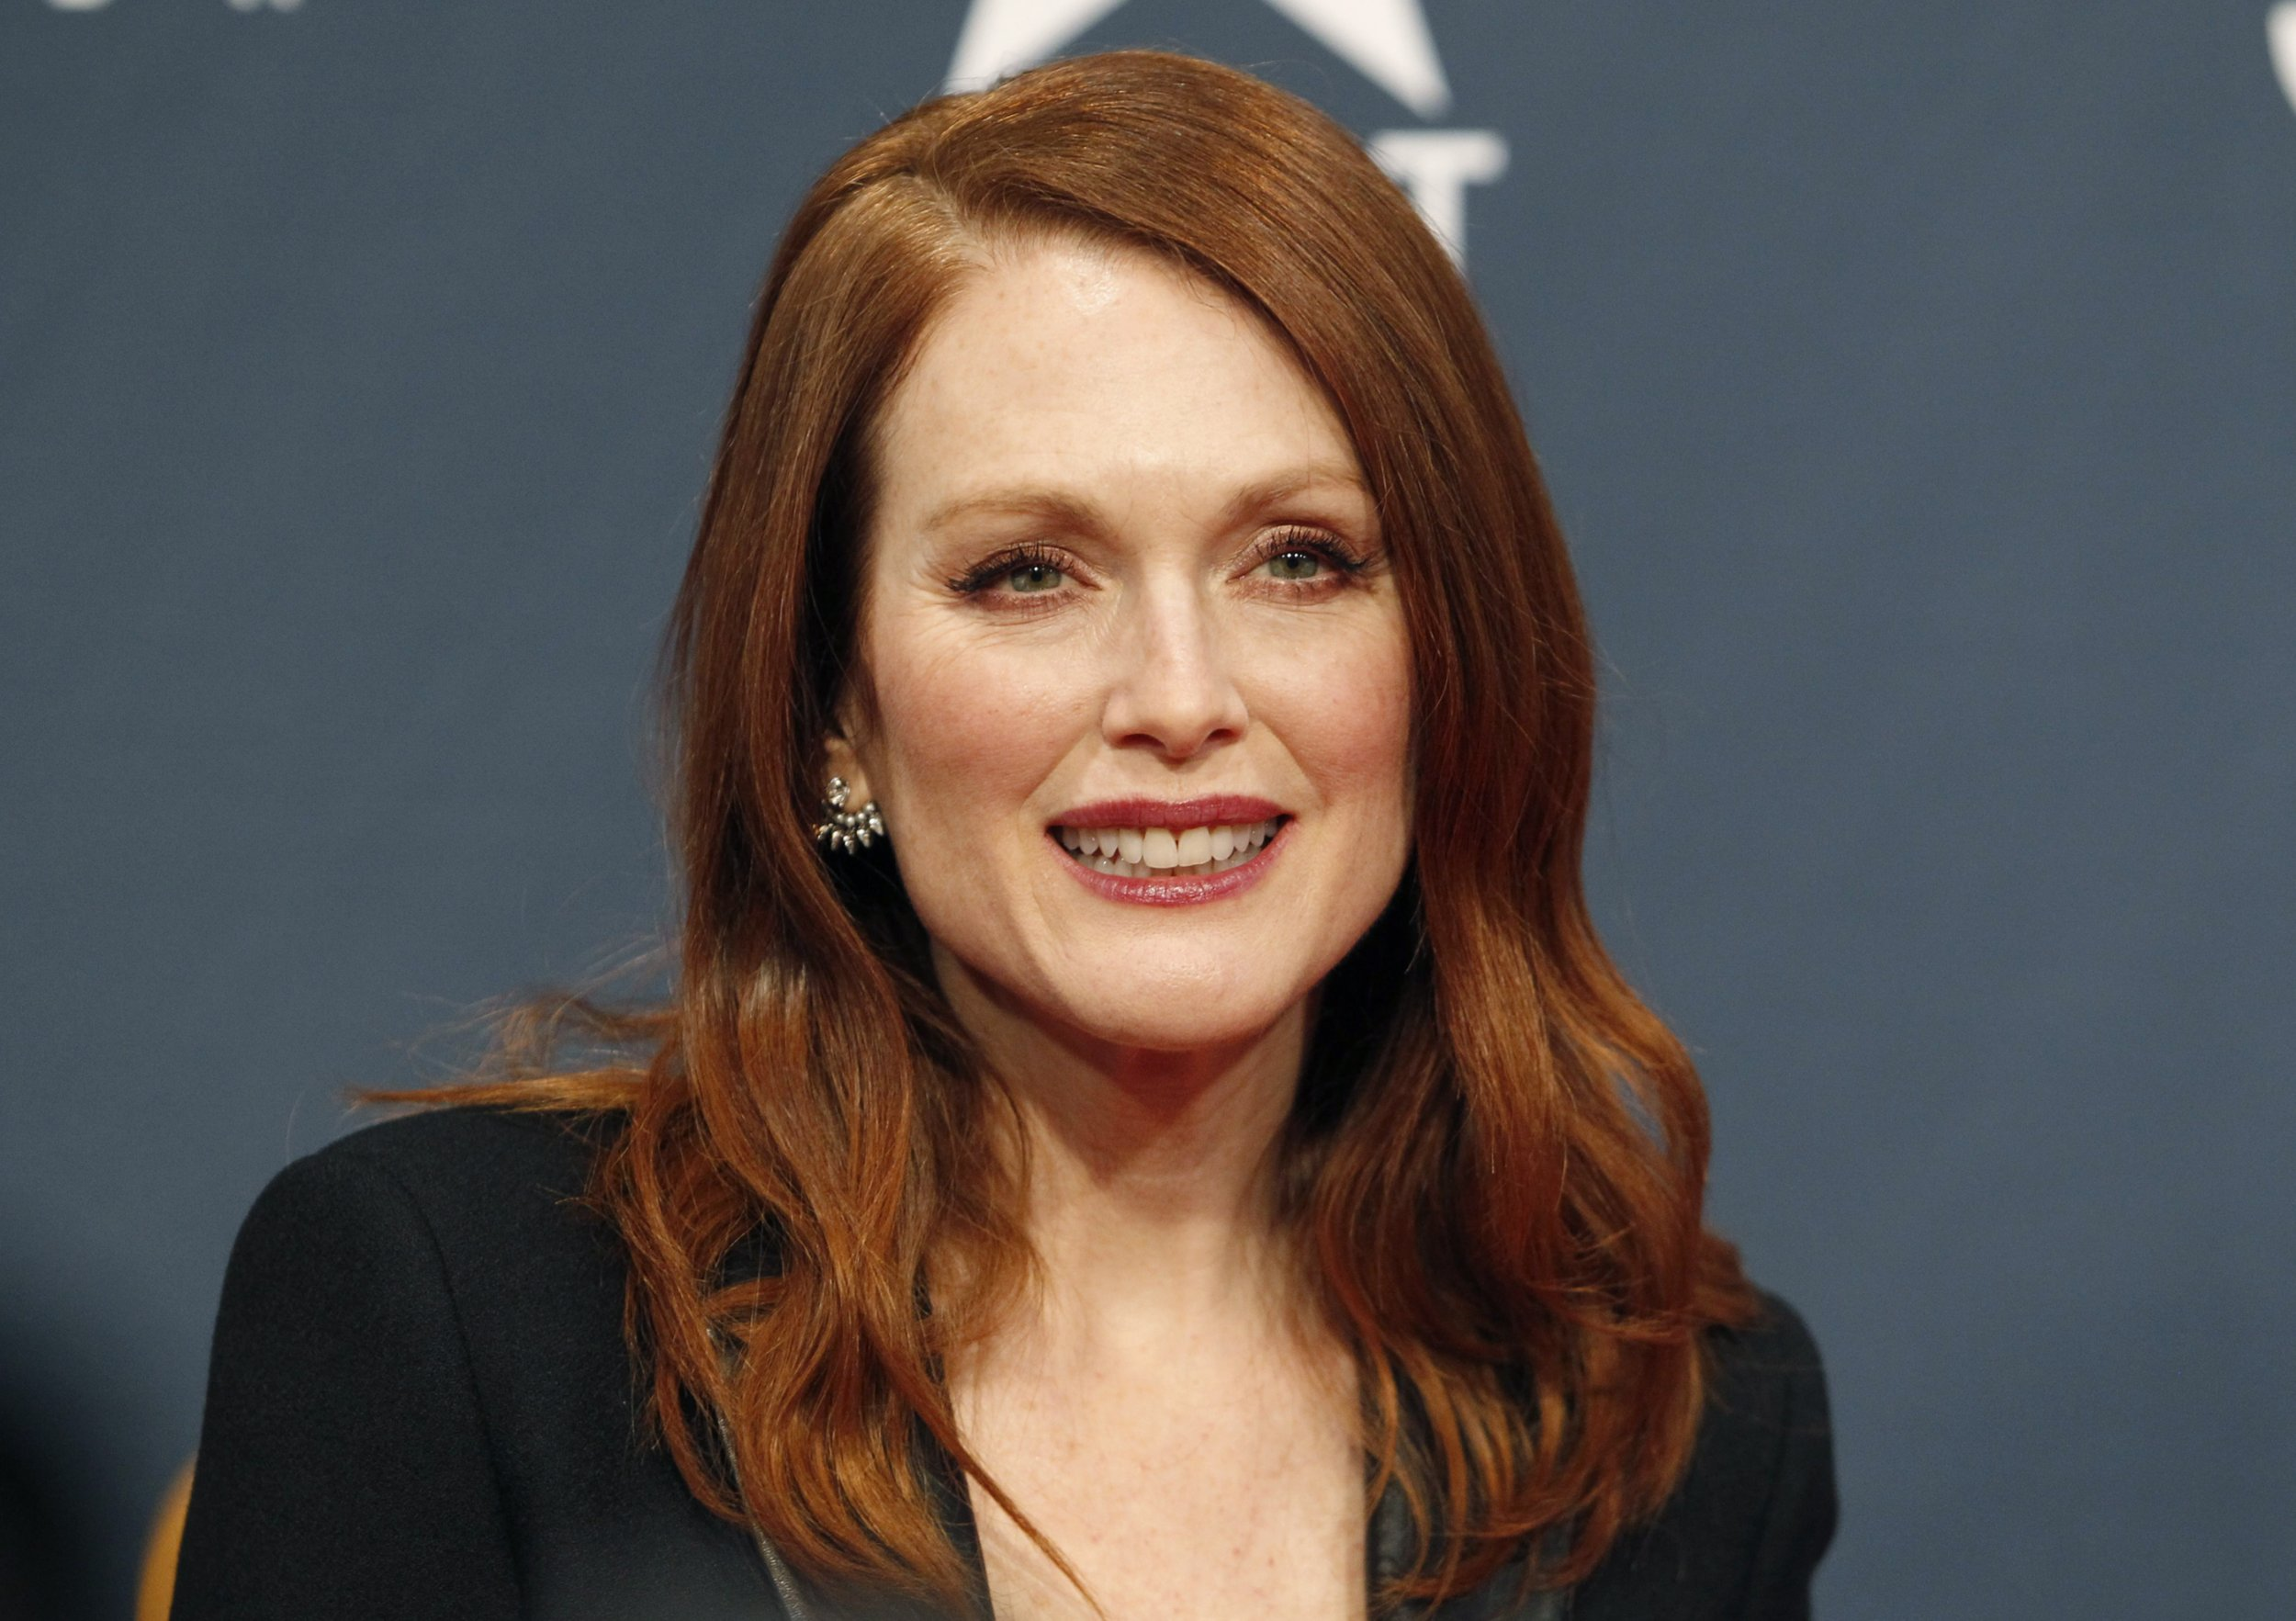 Turkey rejects Julianne Moore